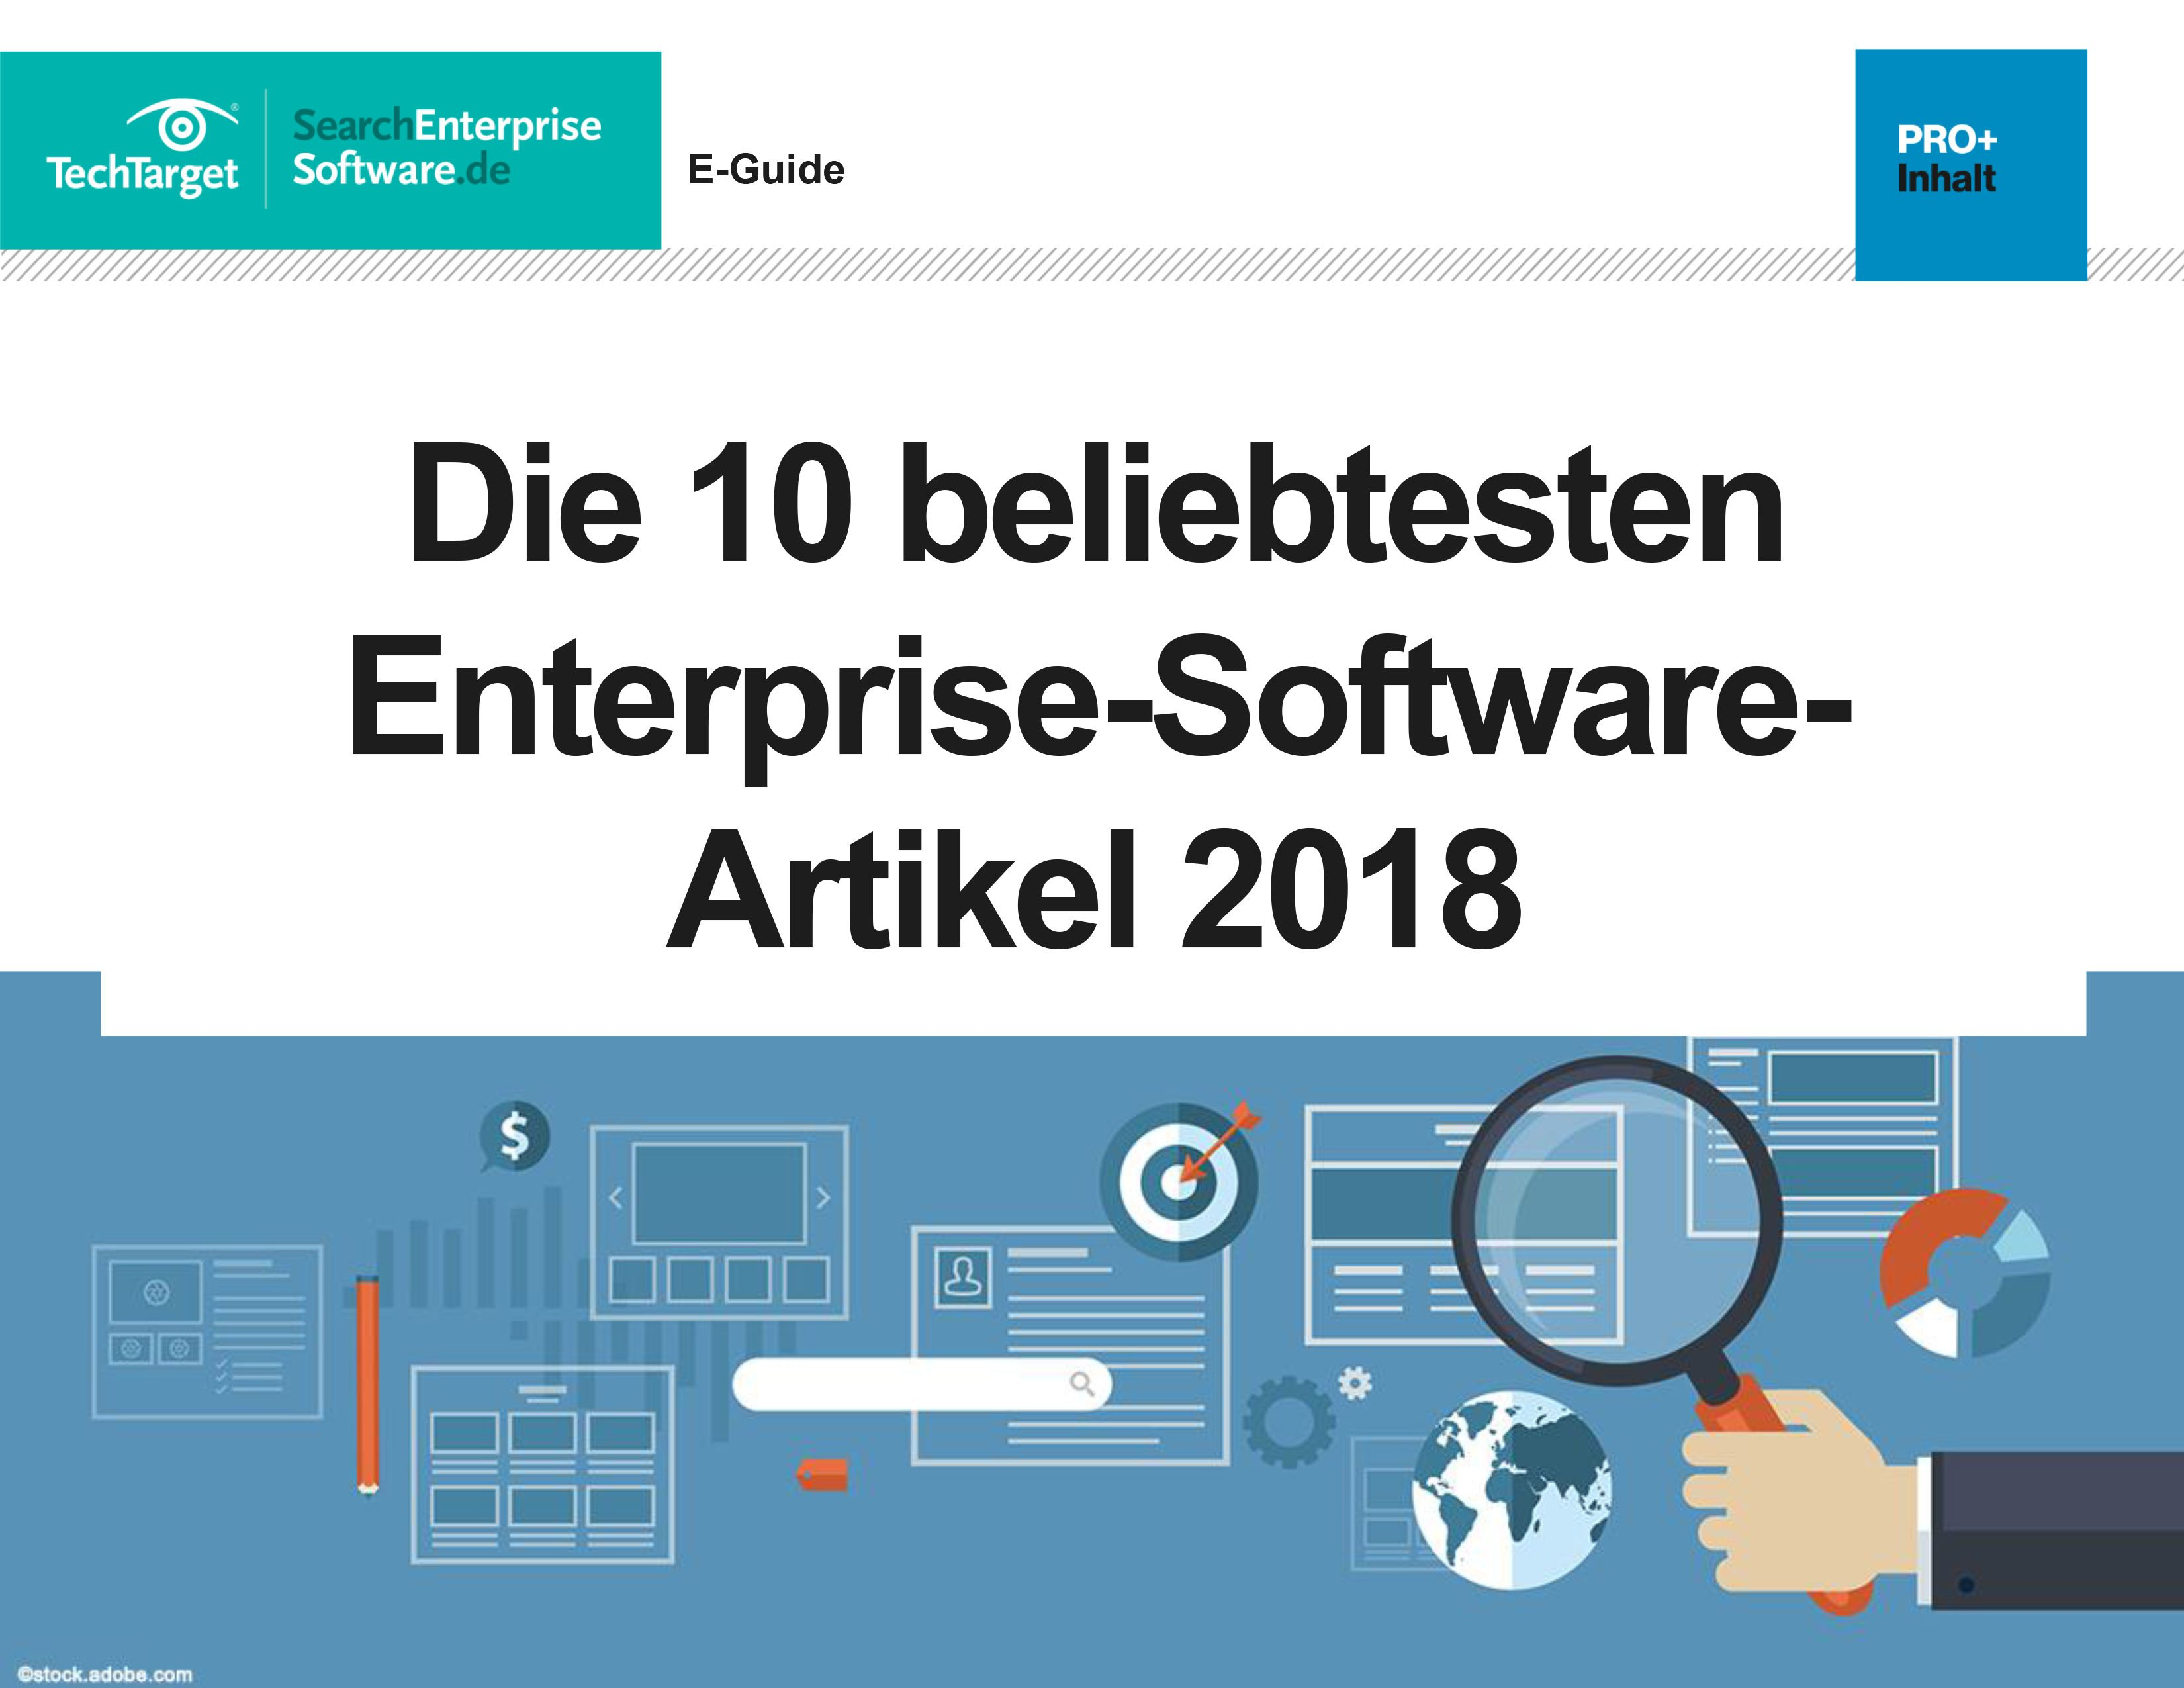 dc29a9f742e6 Management-Informationen zu Enterprise-Software, News und Tipps ...